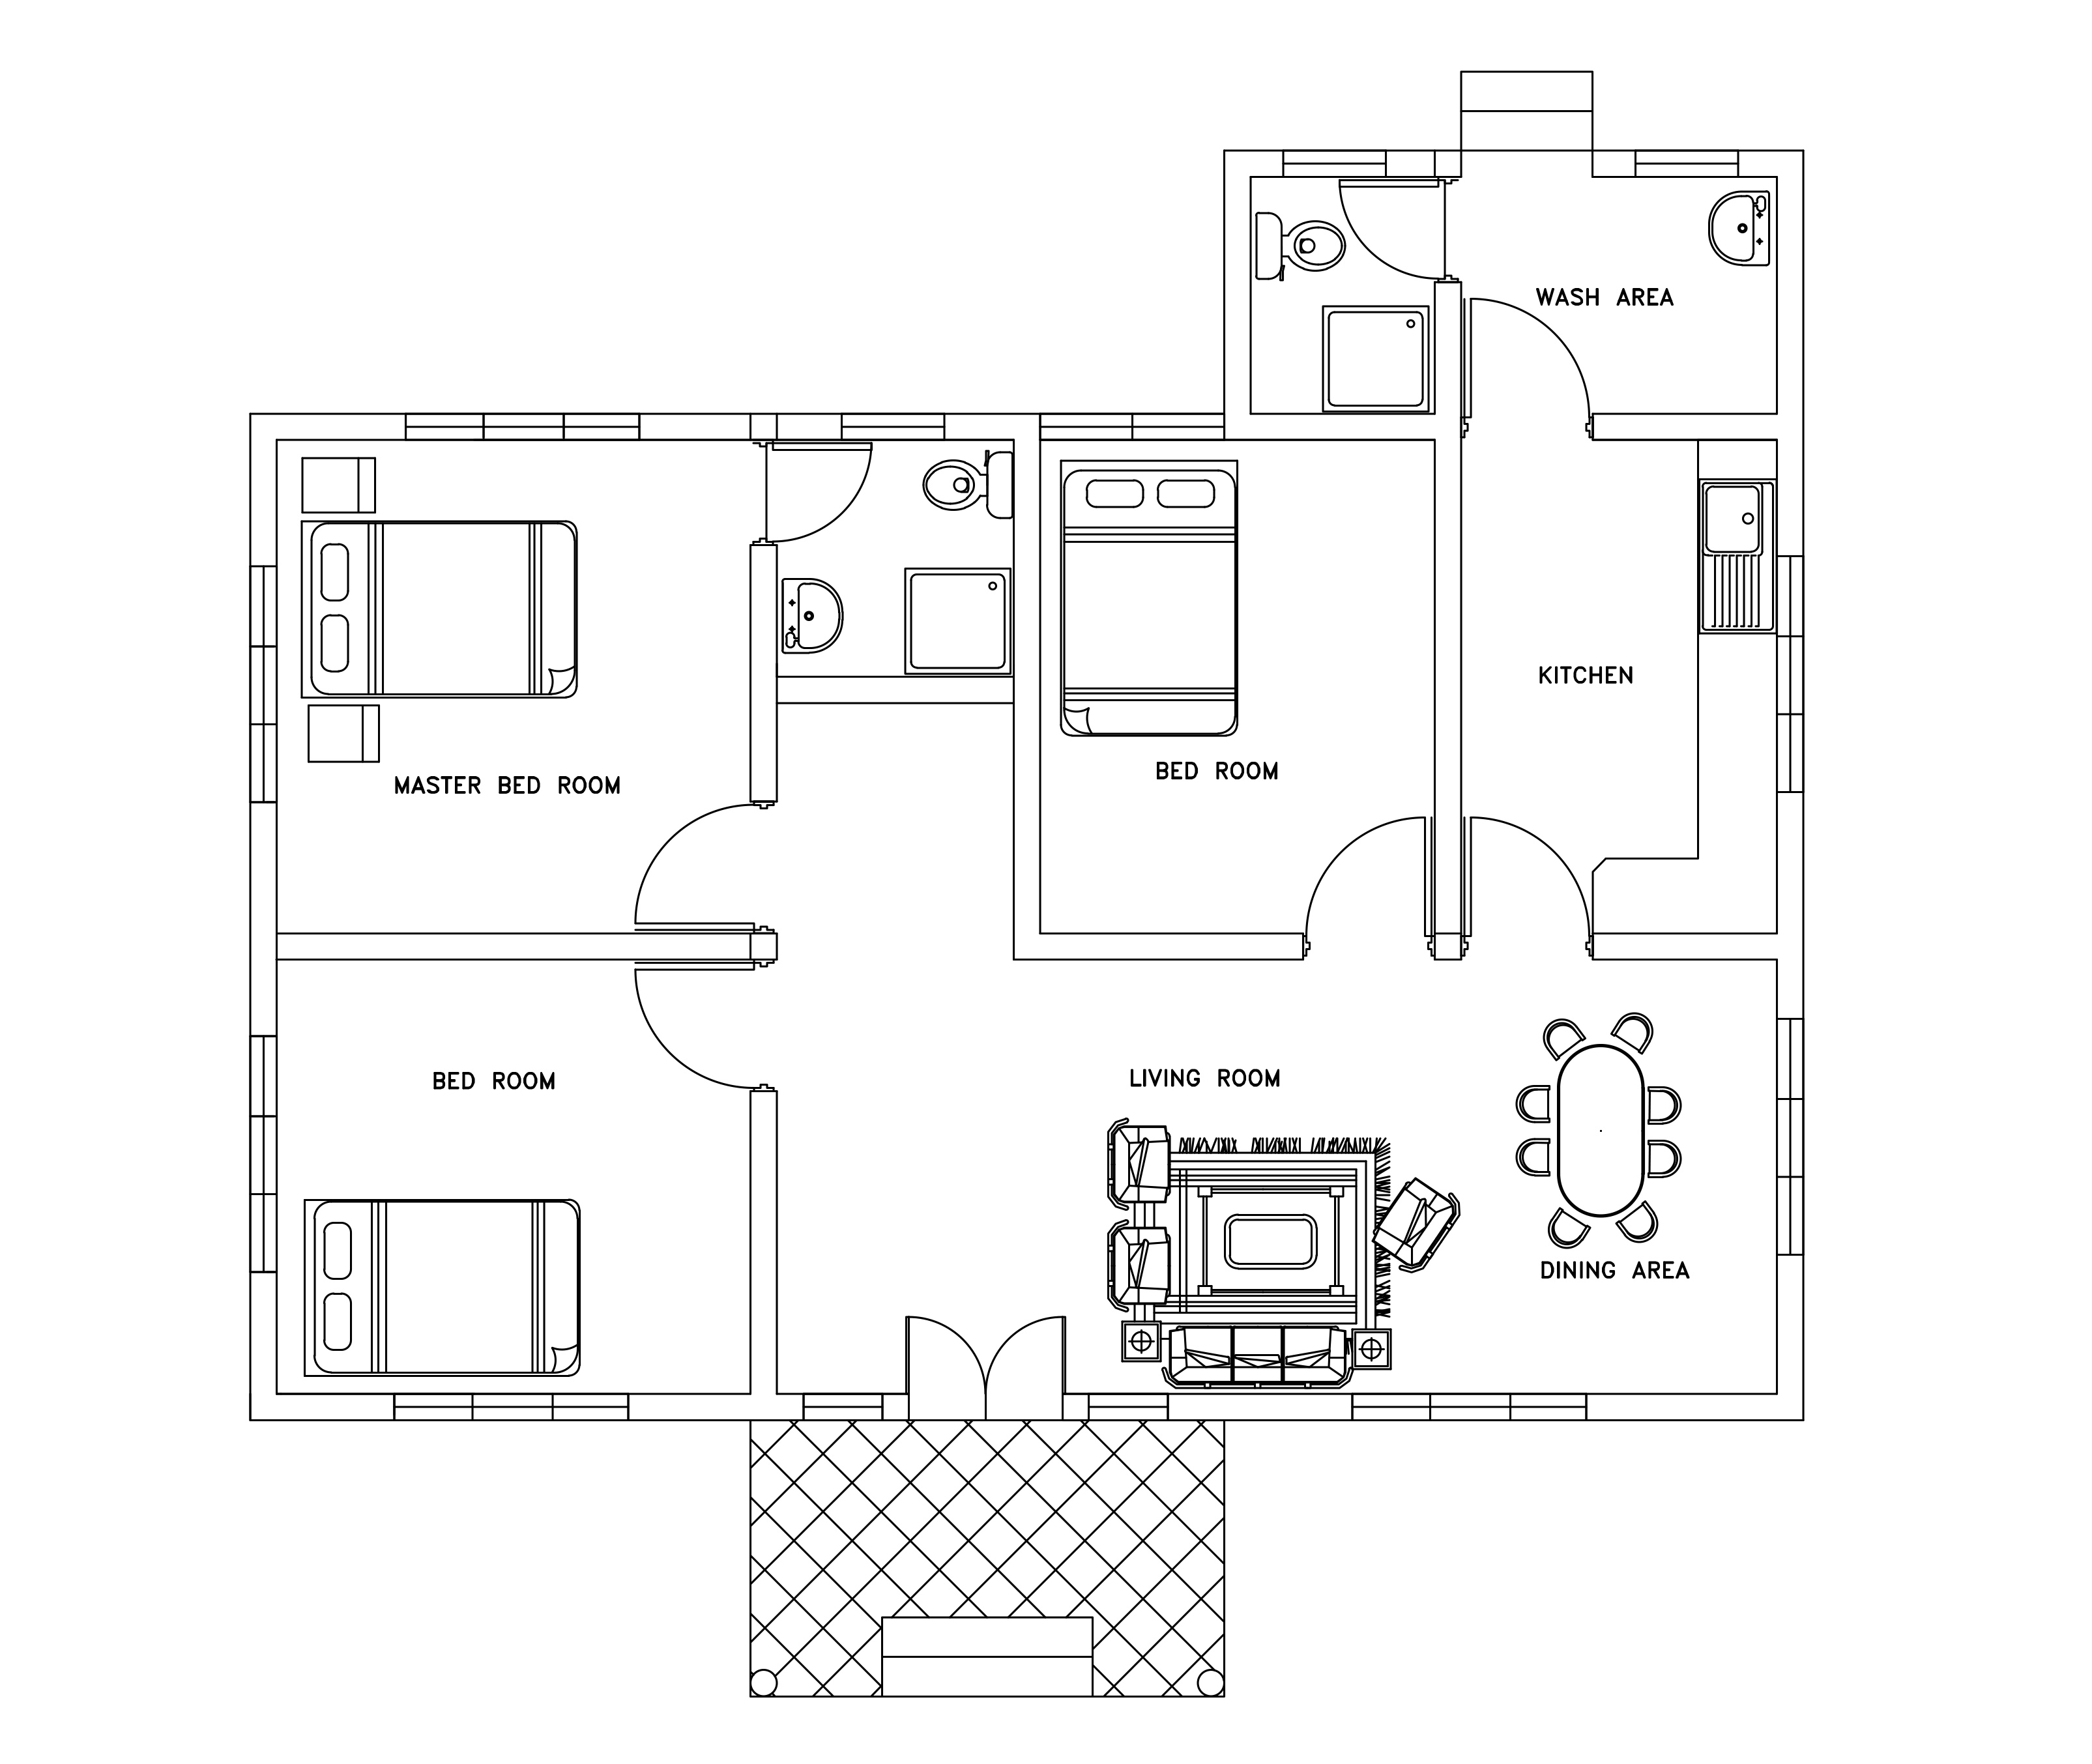 Three bed room small house plan dwg net cad blocks and for Small 3 room house plans